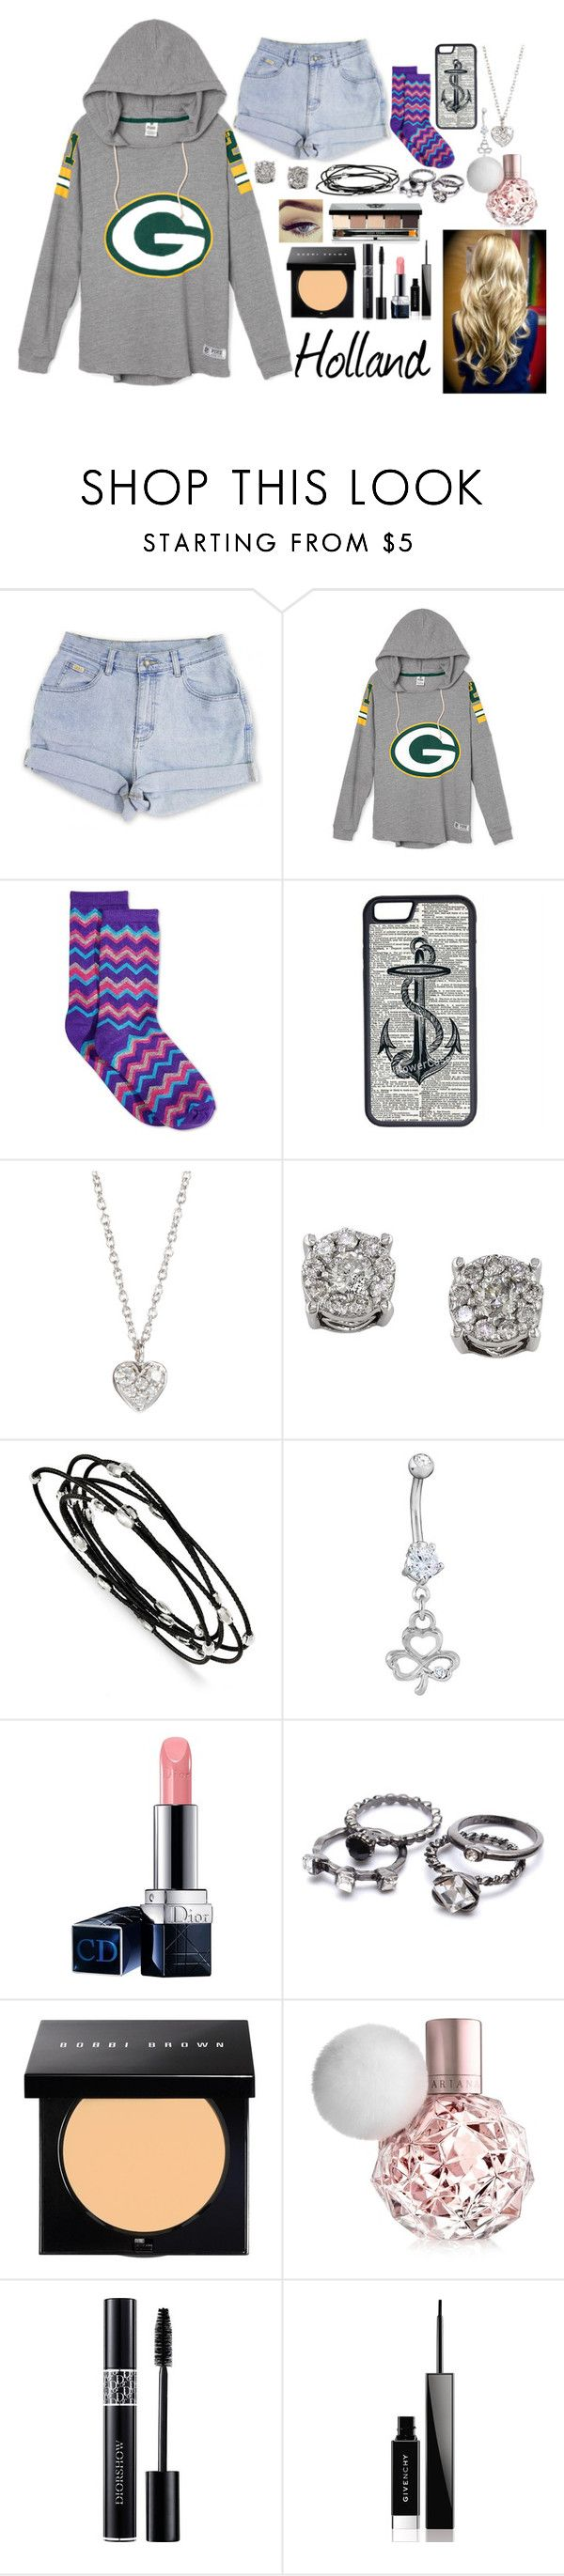 """""""Holland ~ Ch. 2"""" by brianna-764 ❤ liked on Polyvore featuring HOT SOX, CellPowerCases, Finn, Effy Jewelry, Kevin Jewelers, Christian Dior, Bobbi Brown Cosmetics and Givenchy"""